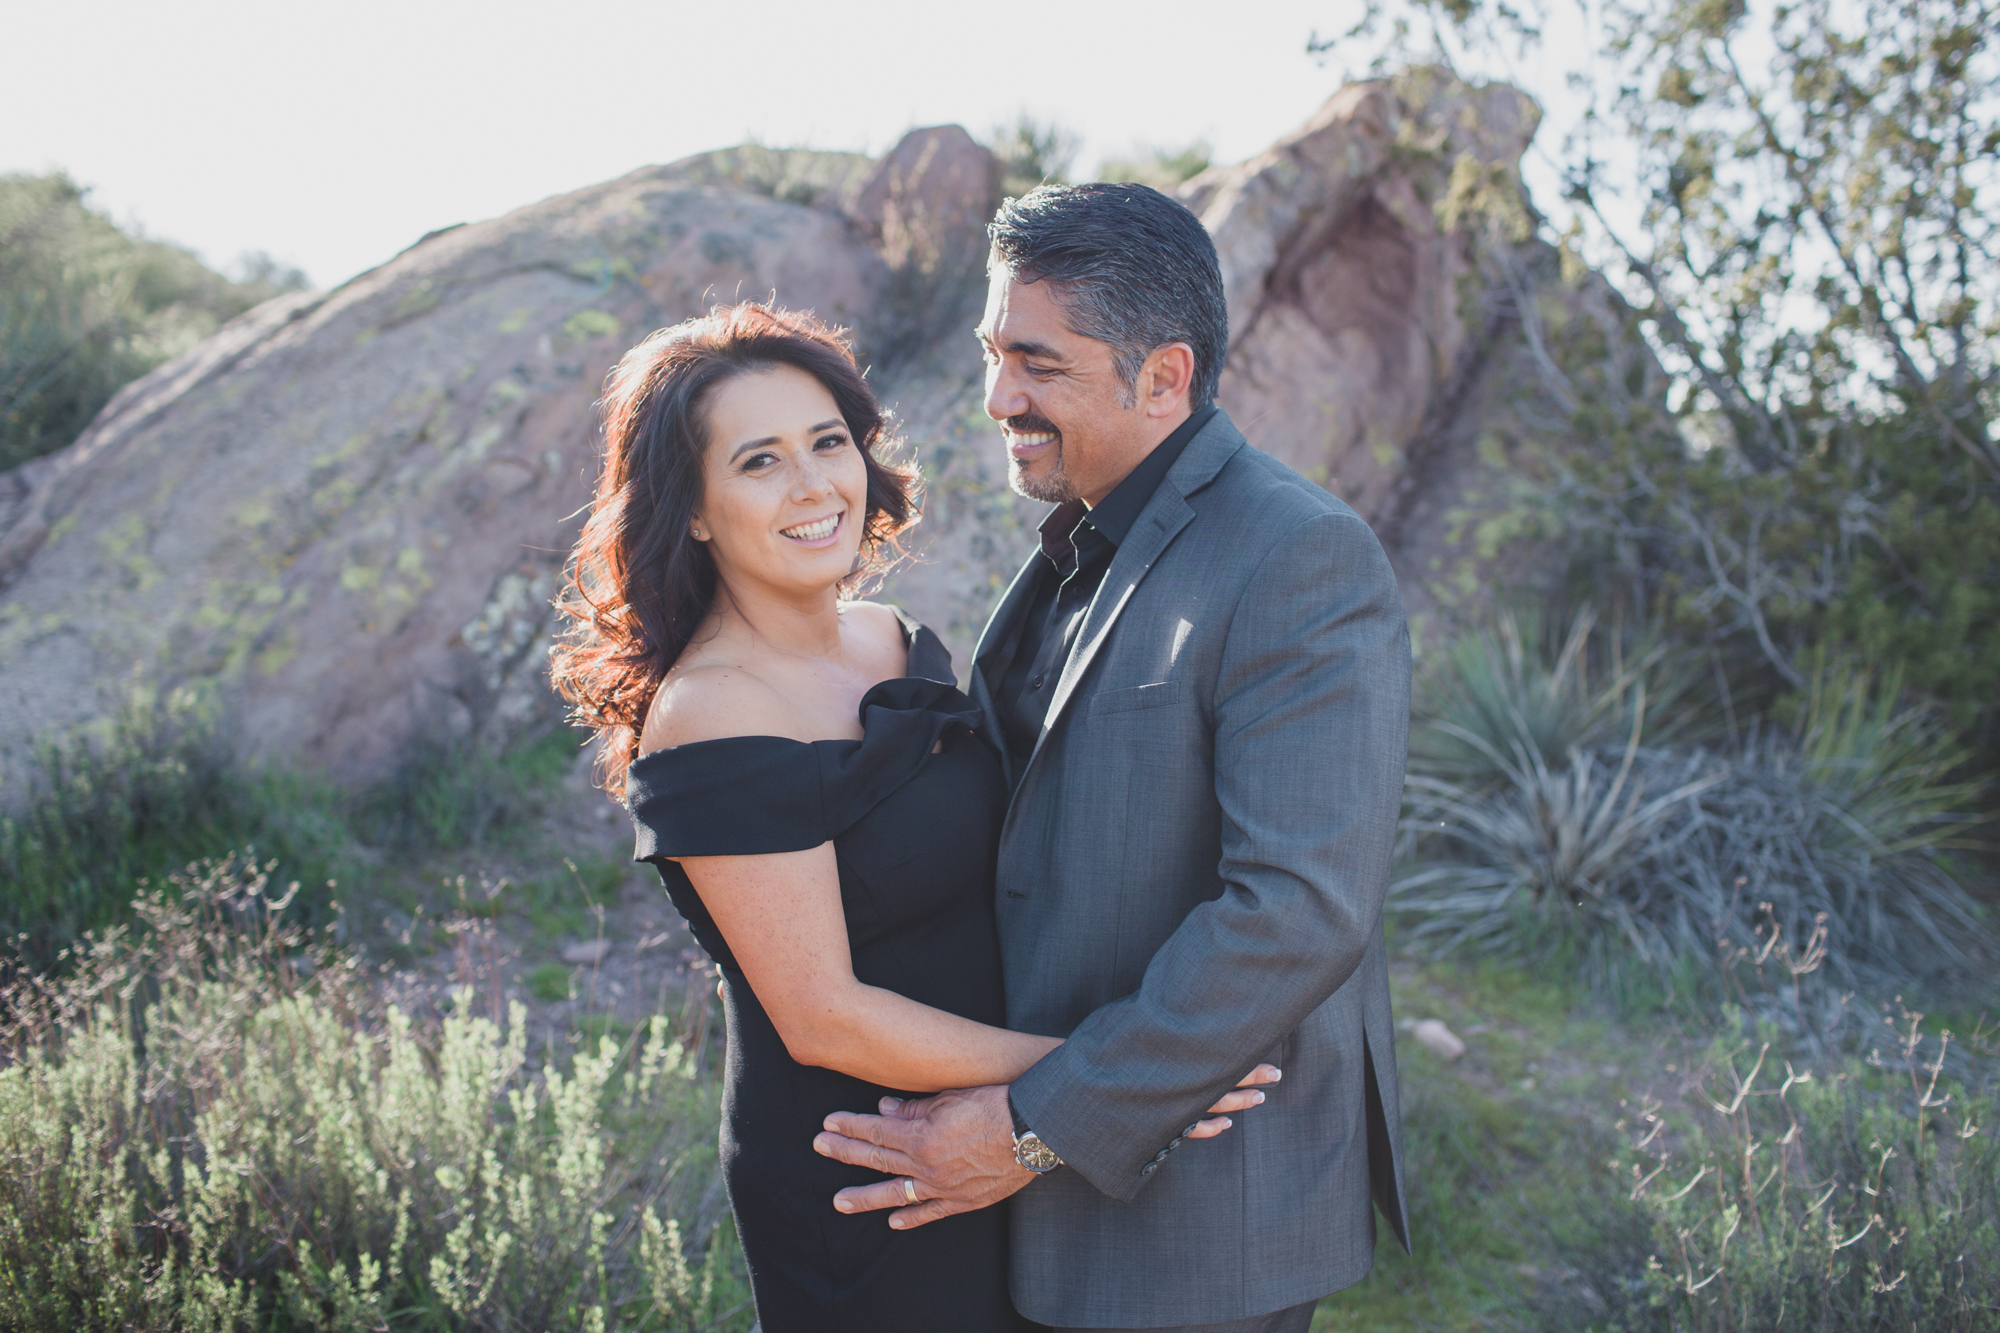 Team Married - Adriana & Rick - Lily Ro Photography-8024.jpg